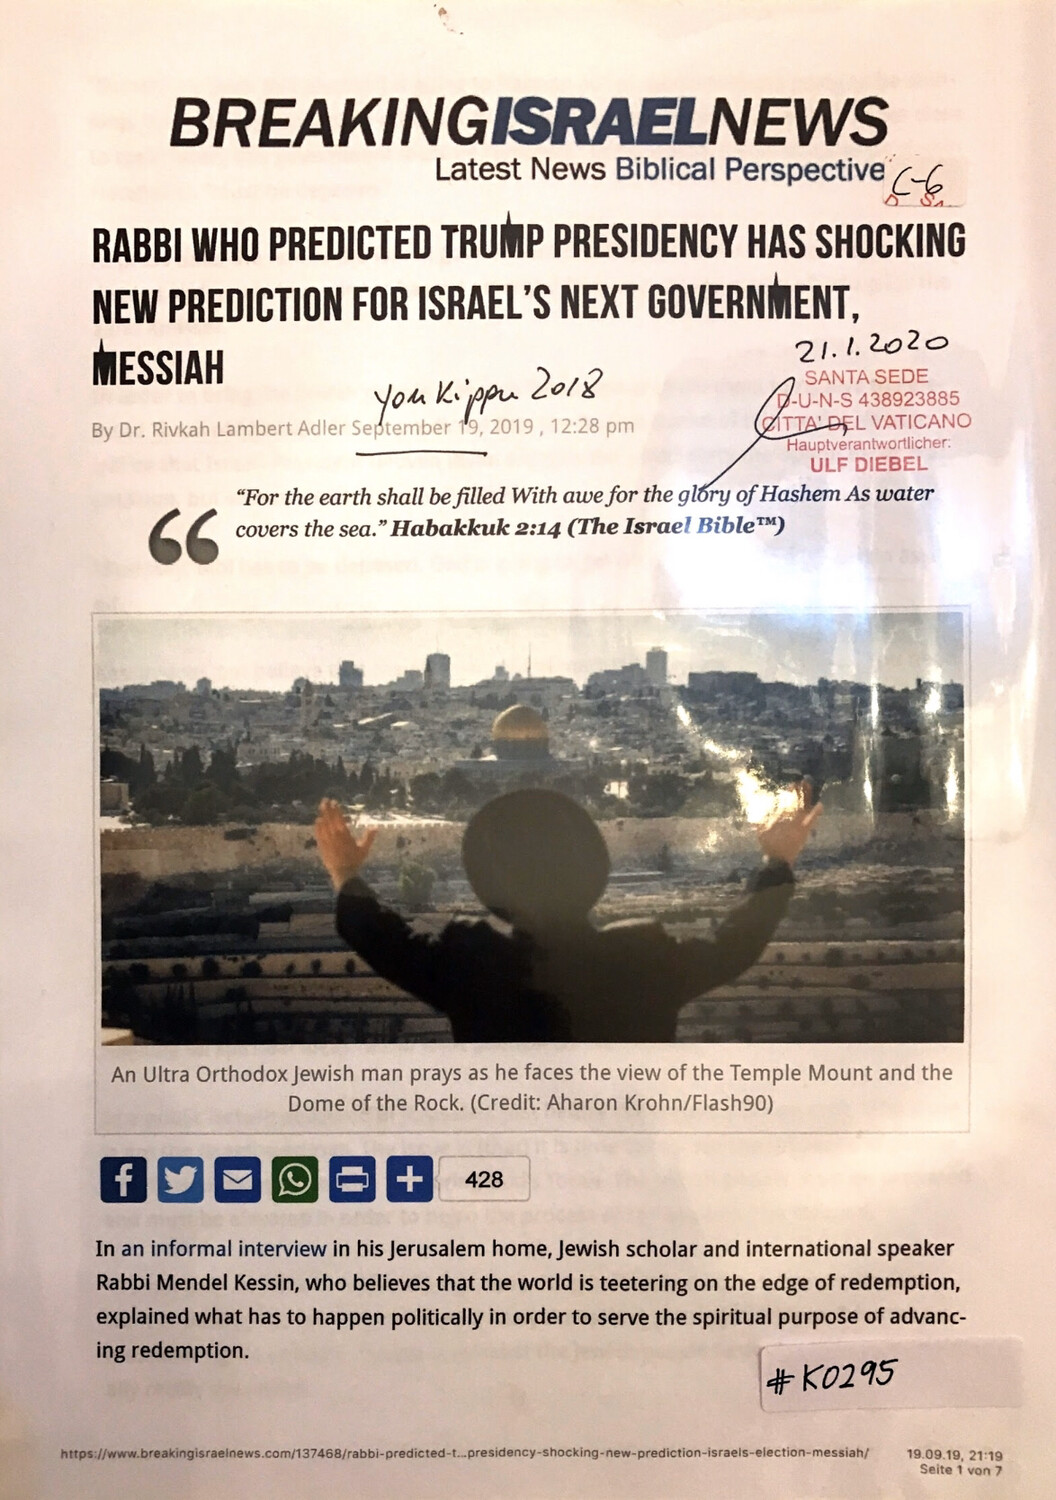 #K0295 l Breaking Israel News - Rabbi who predicted Trump presidency has shocking new prediction for Israel's next government, Messiah